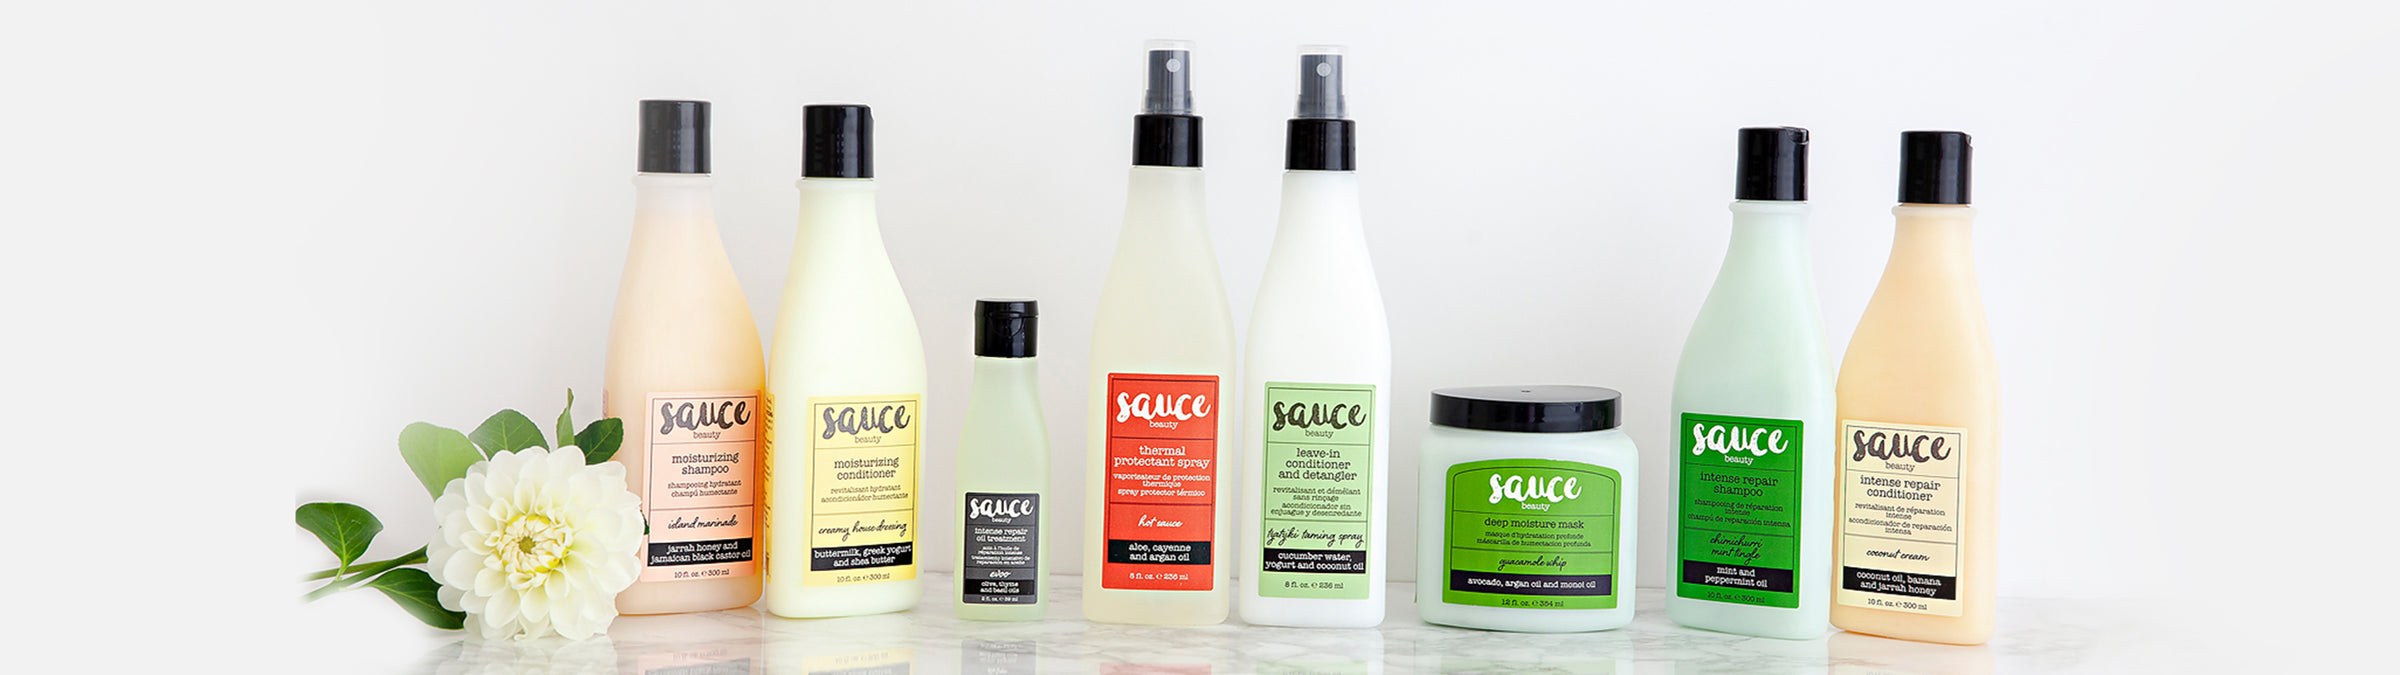 Sauce Beauty products